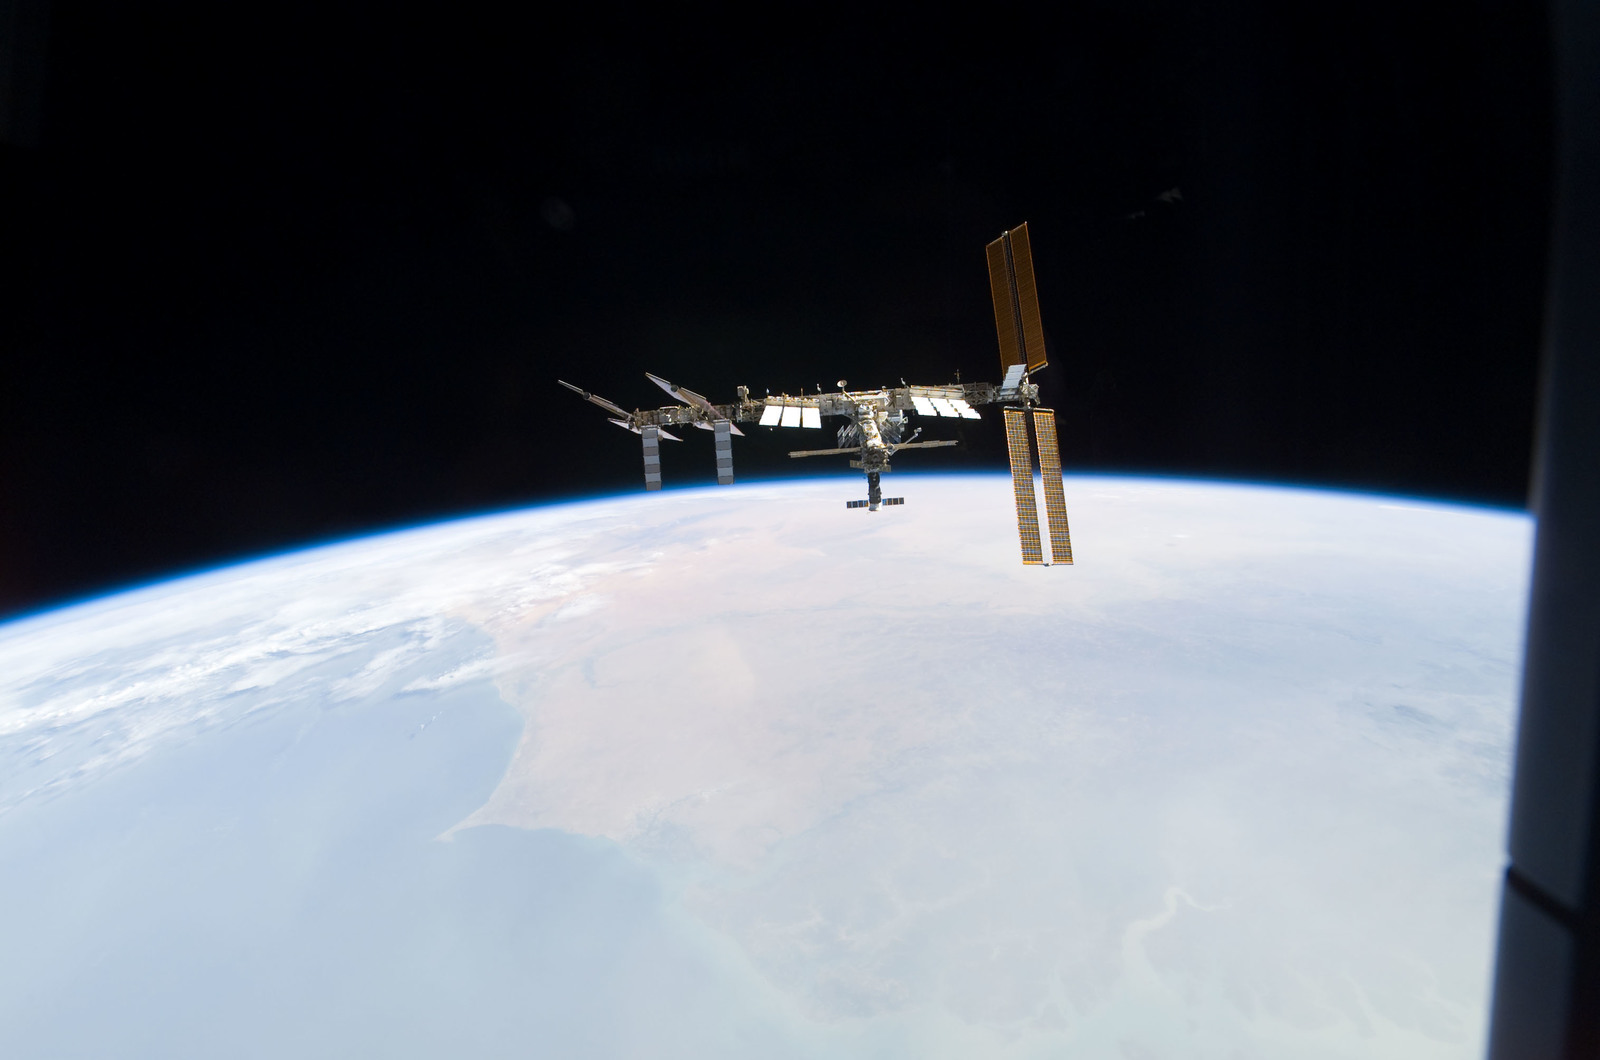 S122E010971 - STS-122 - View of ISS after STS-122 Undocking